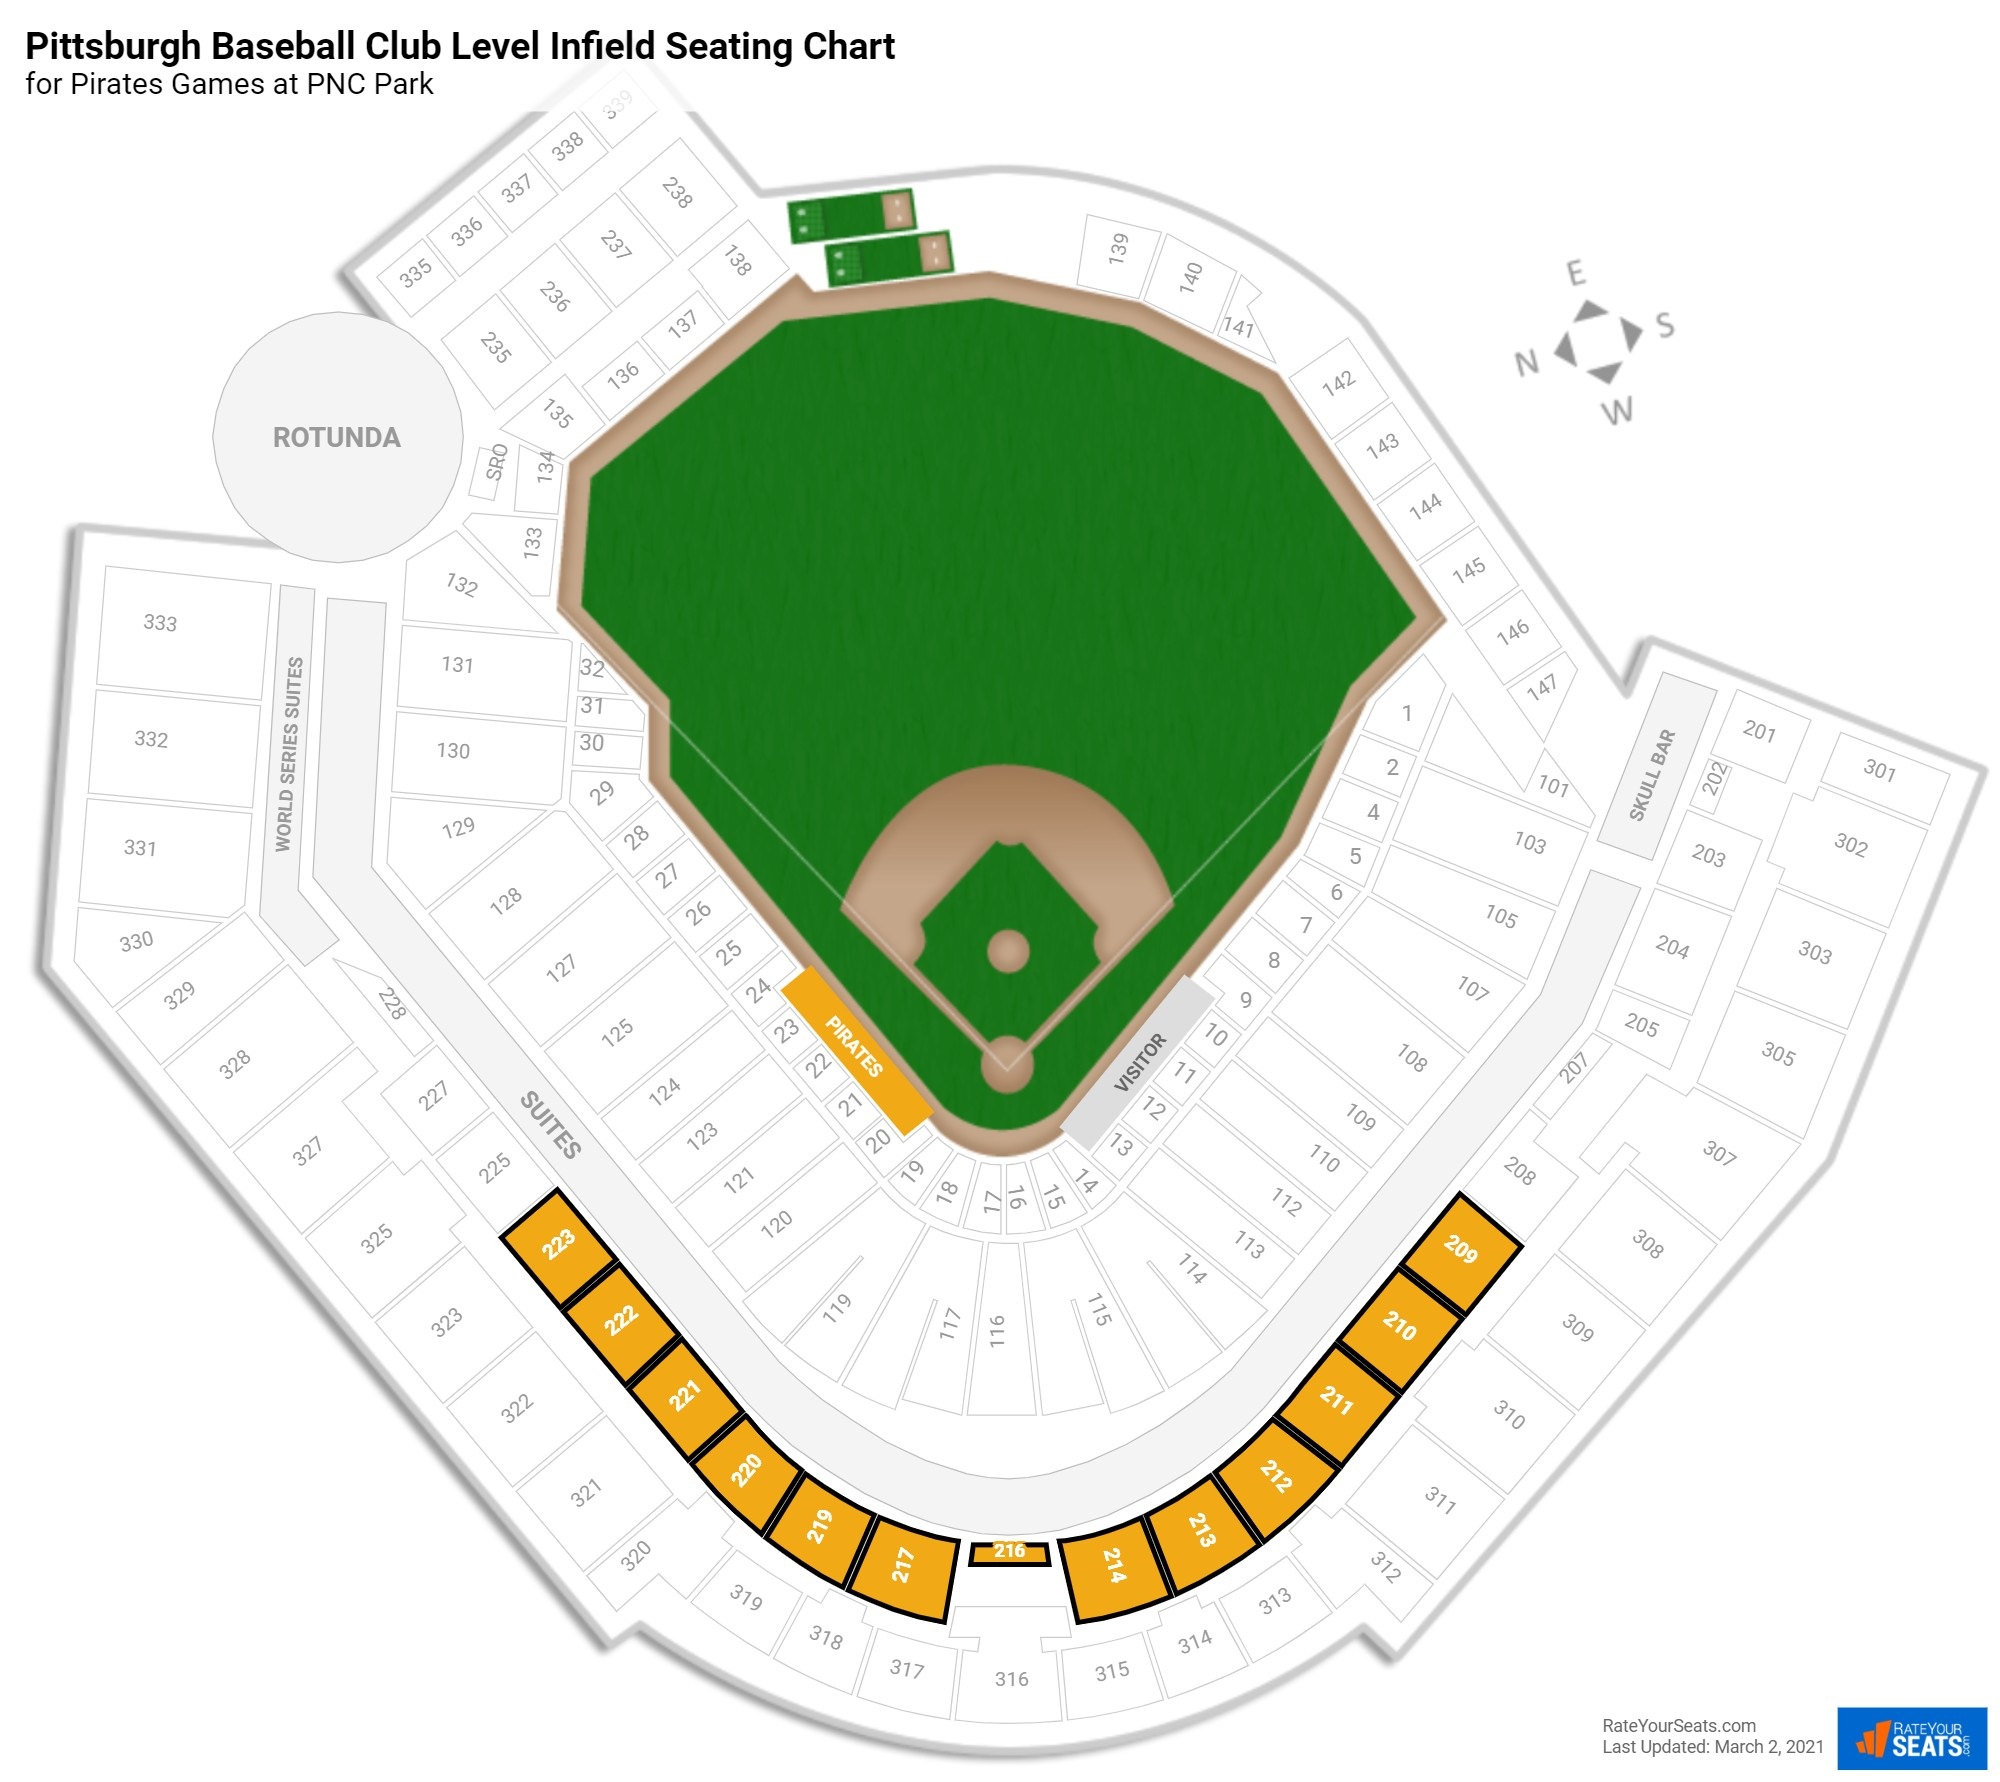 PNC Park PBC Level Infield seating chart